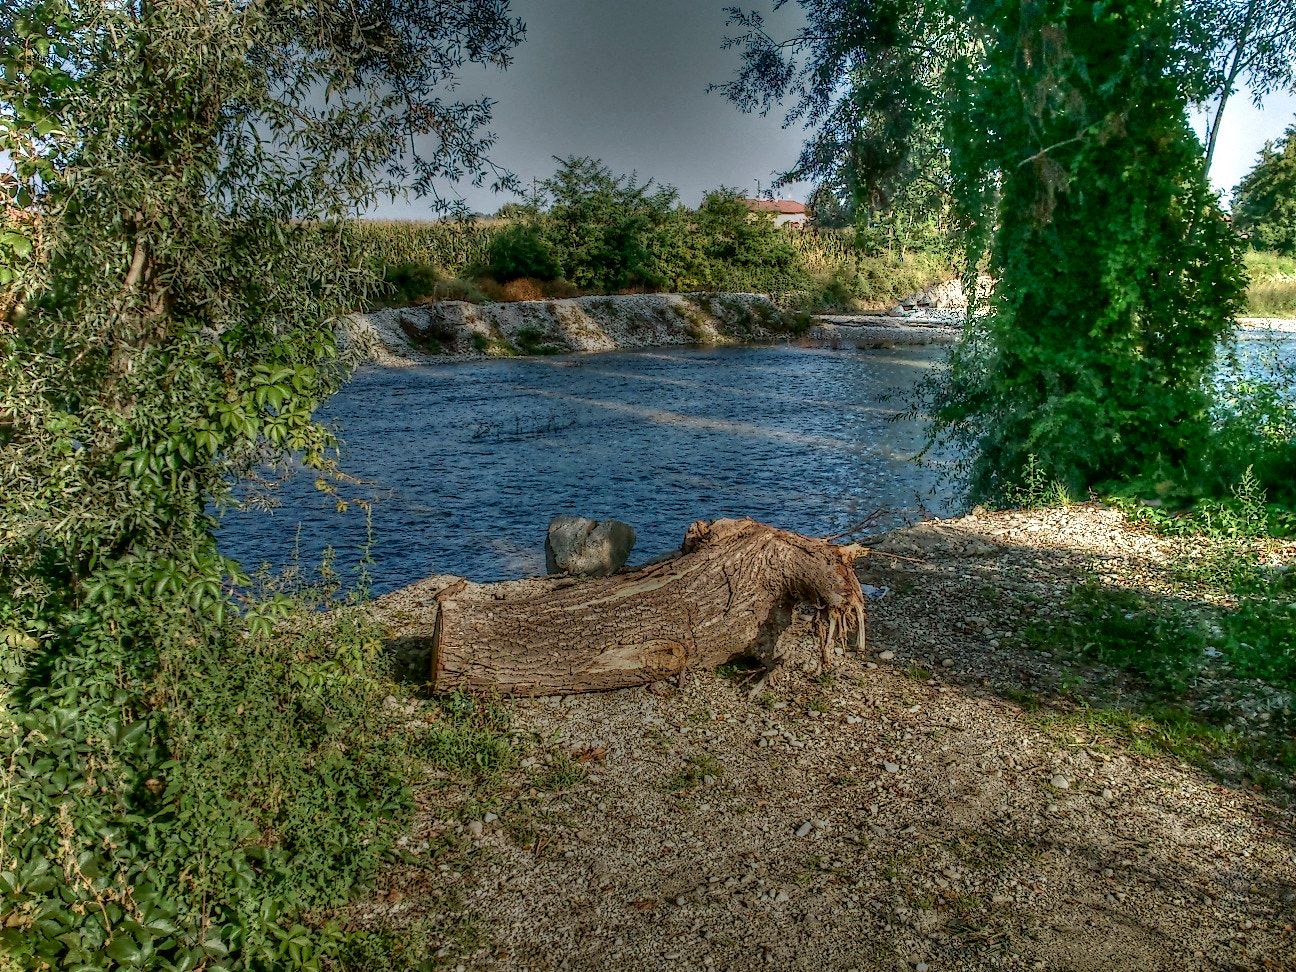 Photograph la quiete del fiume by Clay Bass on 500px